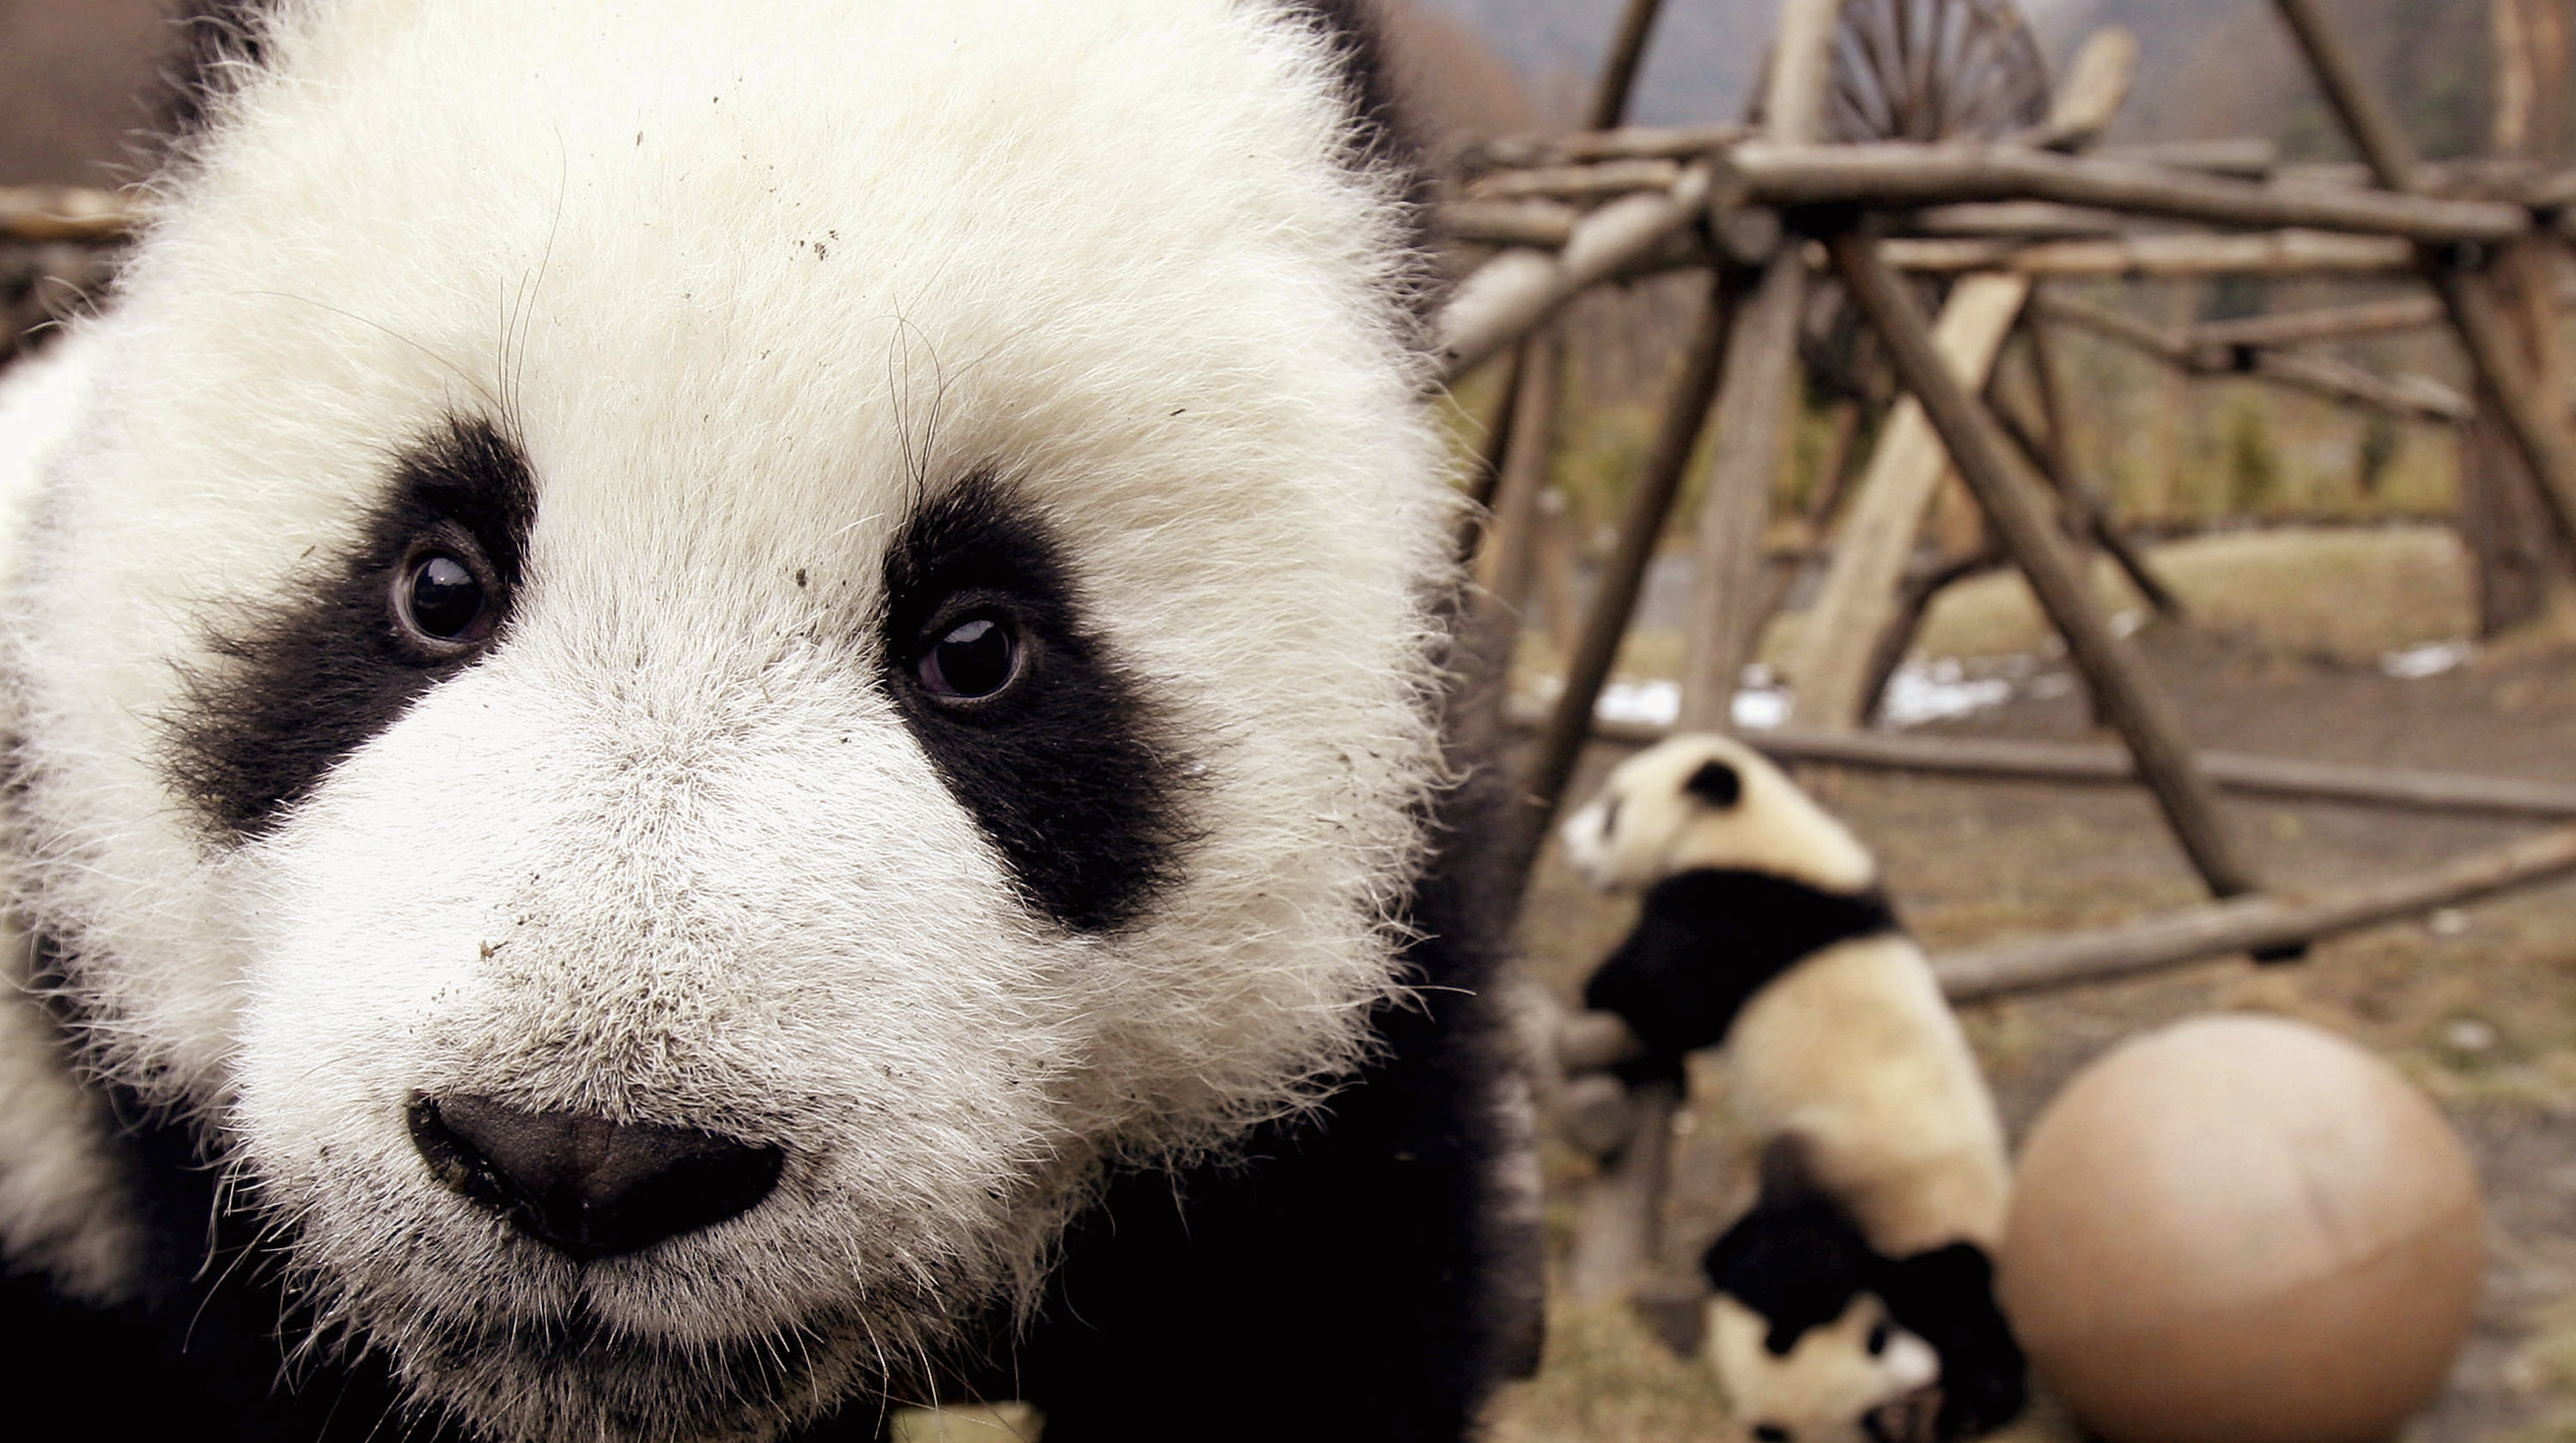 Giant Pandas Play At The Wolong Giant Panda Bear Research Center  (Photo by China Photos/Getty Images)